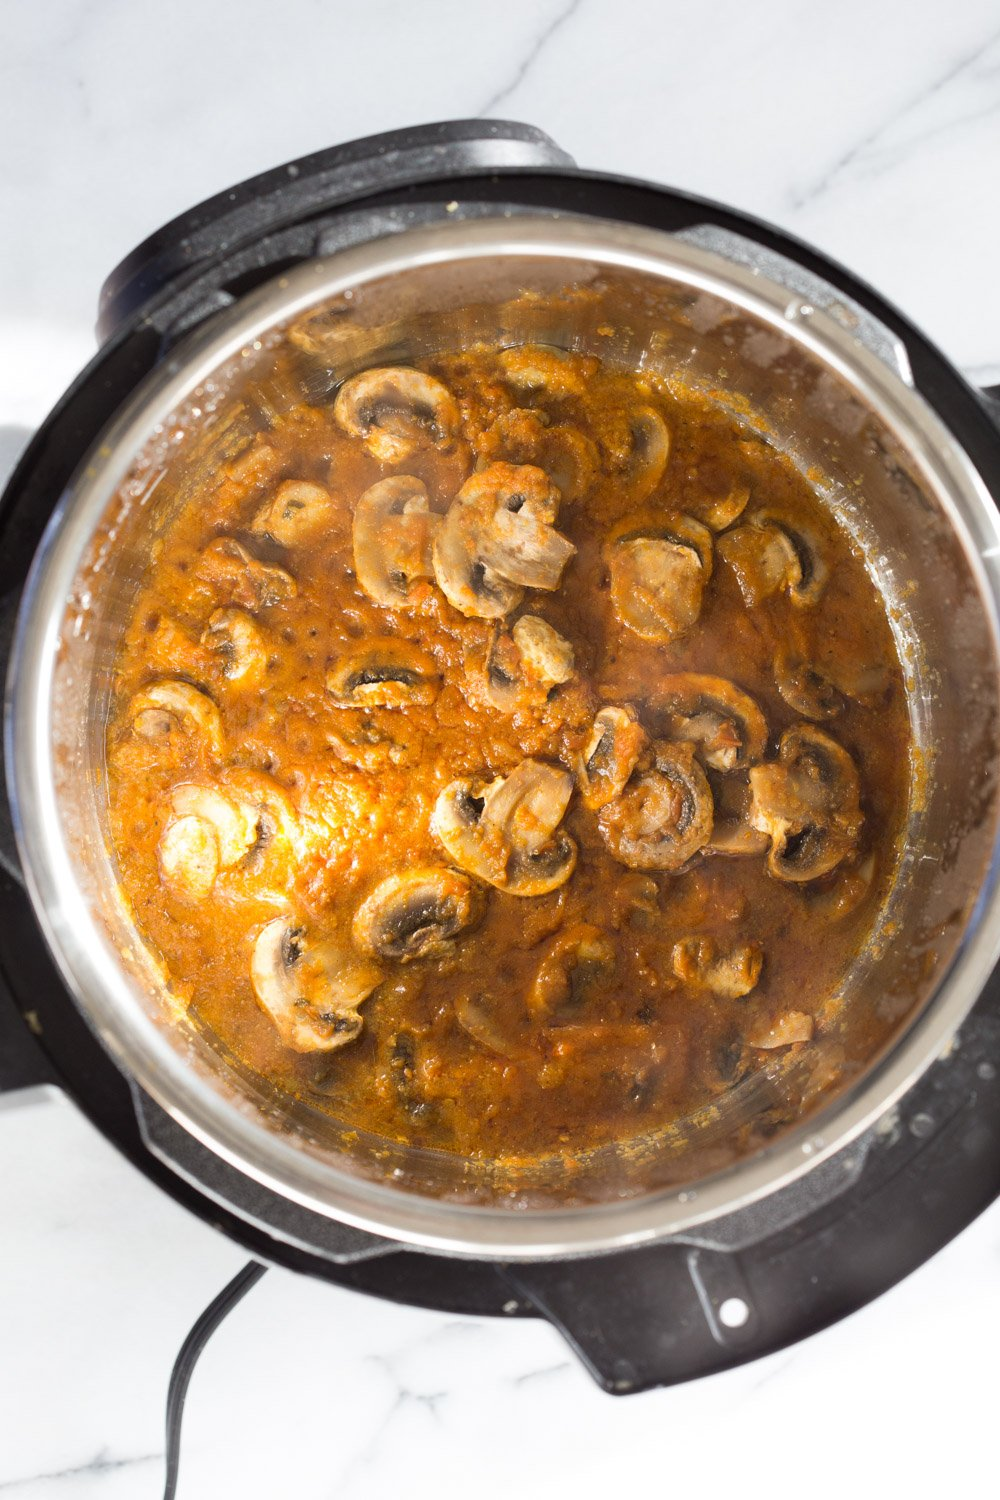 Instant Pot Mushroom Masala. Easy Mushrooms and peas in Creamy Sauce made in an Instant Pot. Add chickpeas for a hearty meal. #Vegan #Gluten-free #Soyfree #Recipe. Can be #nutfree  #VeganRicha